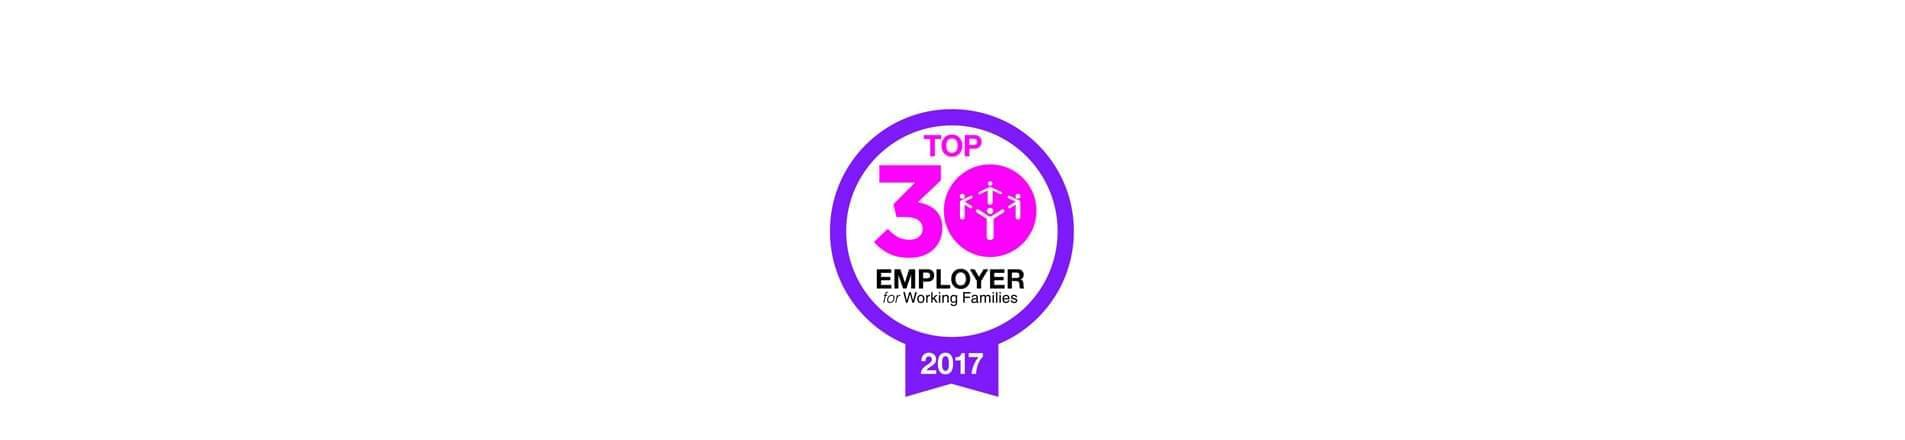 Working families logo . Top 30 employer for working  Families 2017